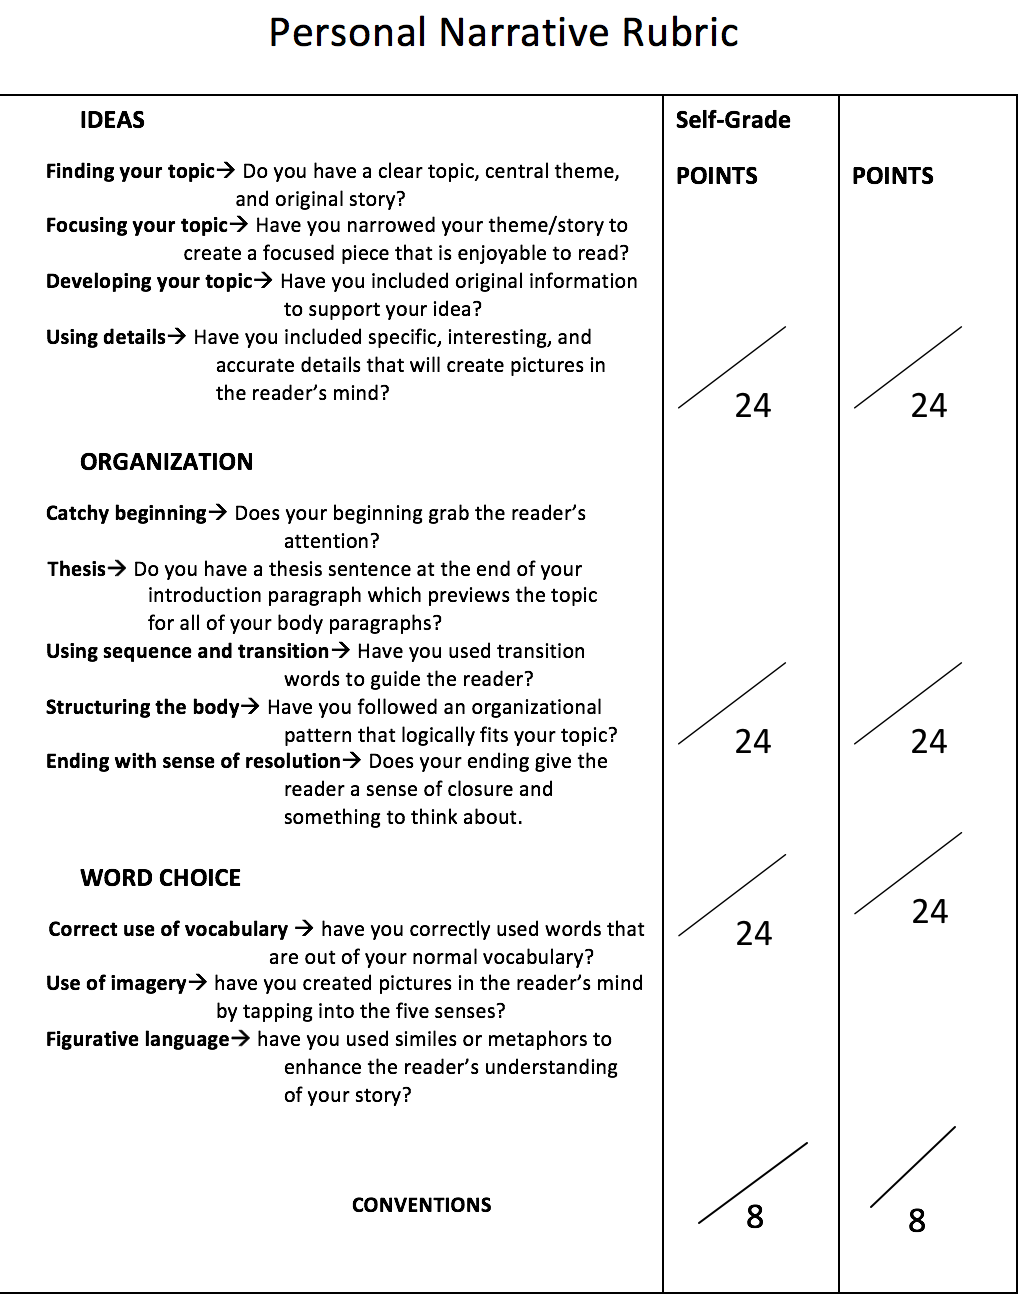 funny persuasive essays persuasive essay speech rubric essay funny  persuasive essay speech rubric persuasive essay ideas for high school high school persuasive essay rubric funny